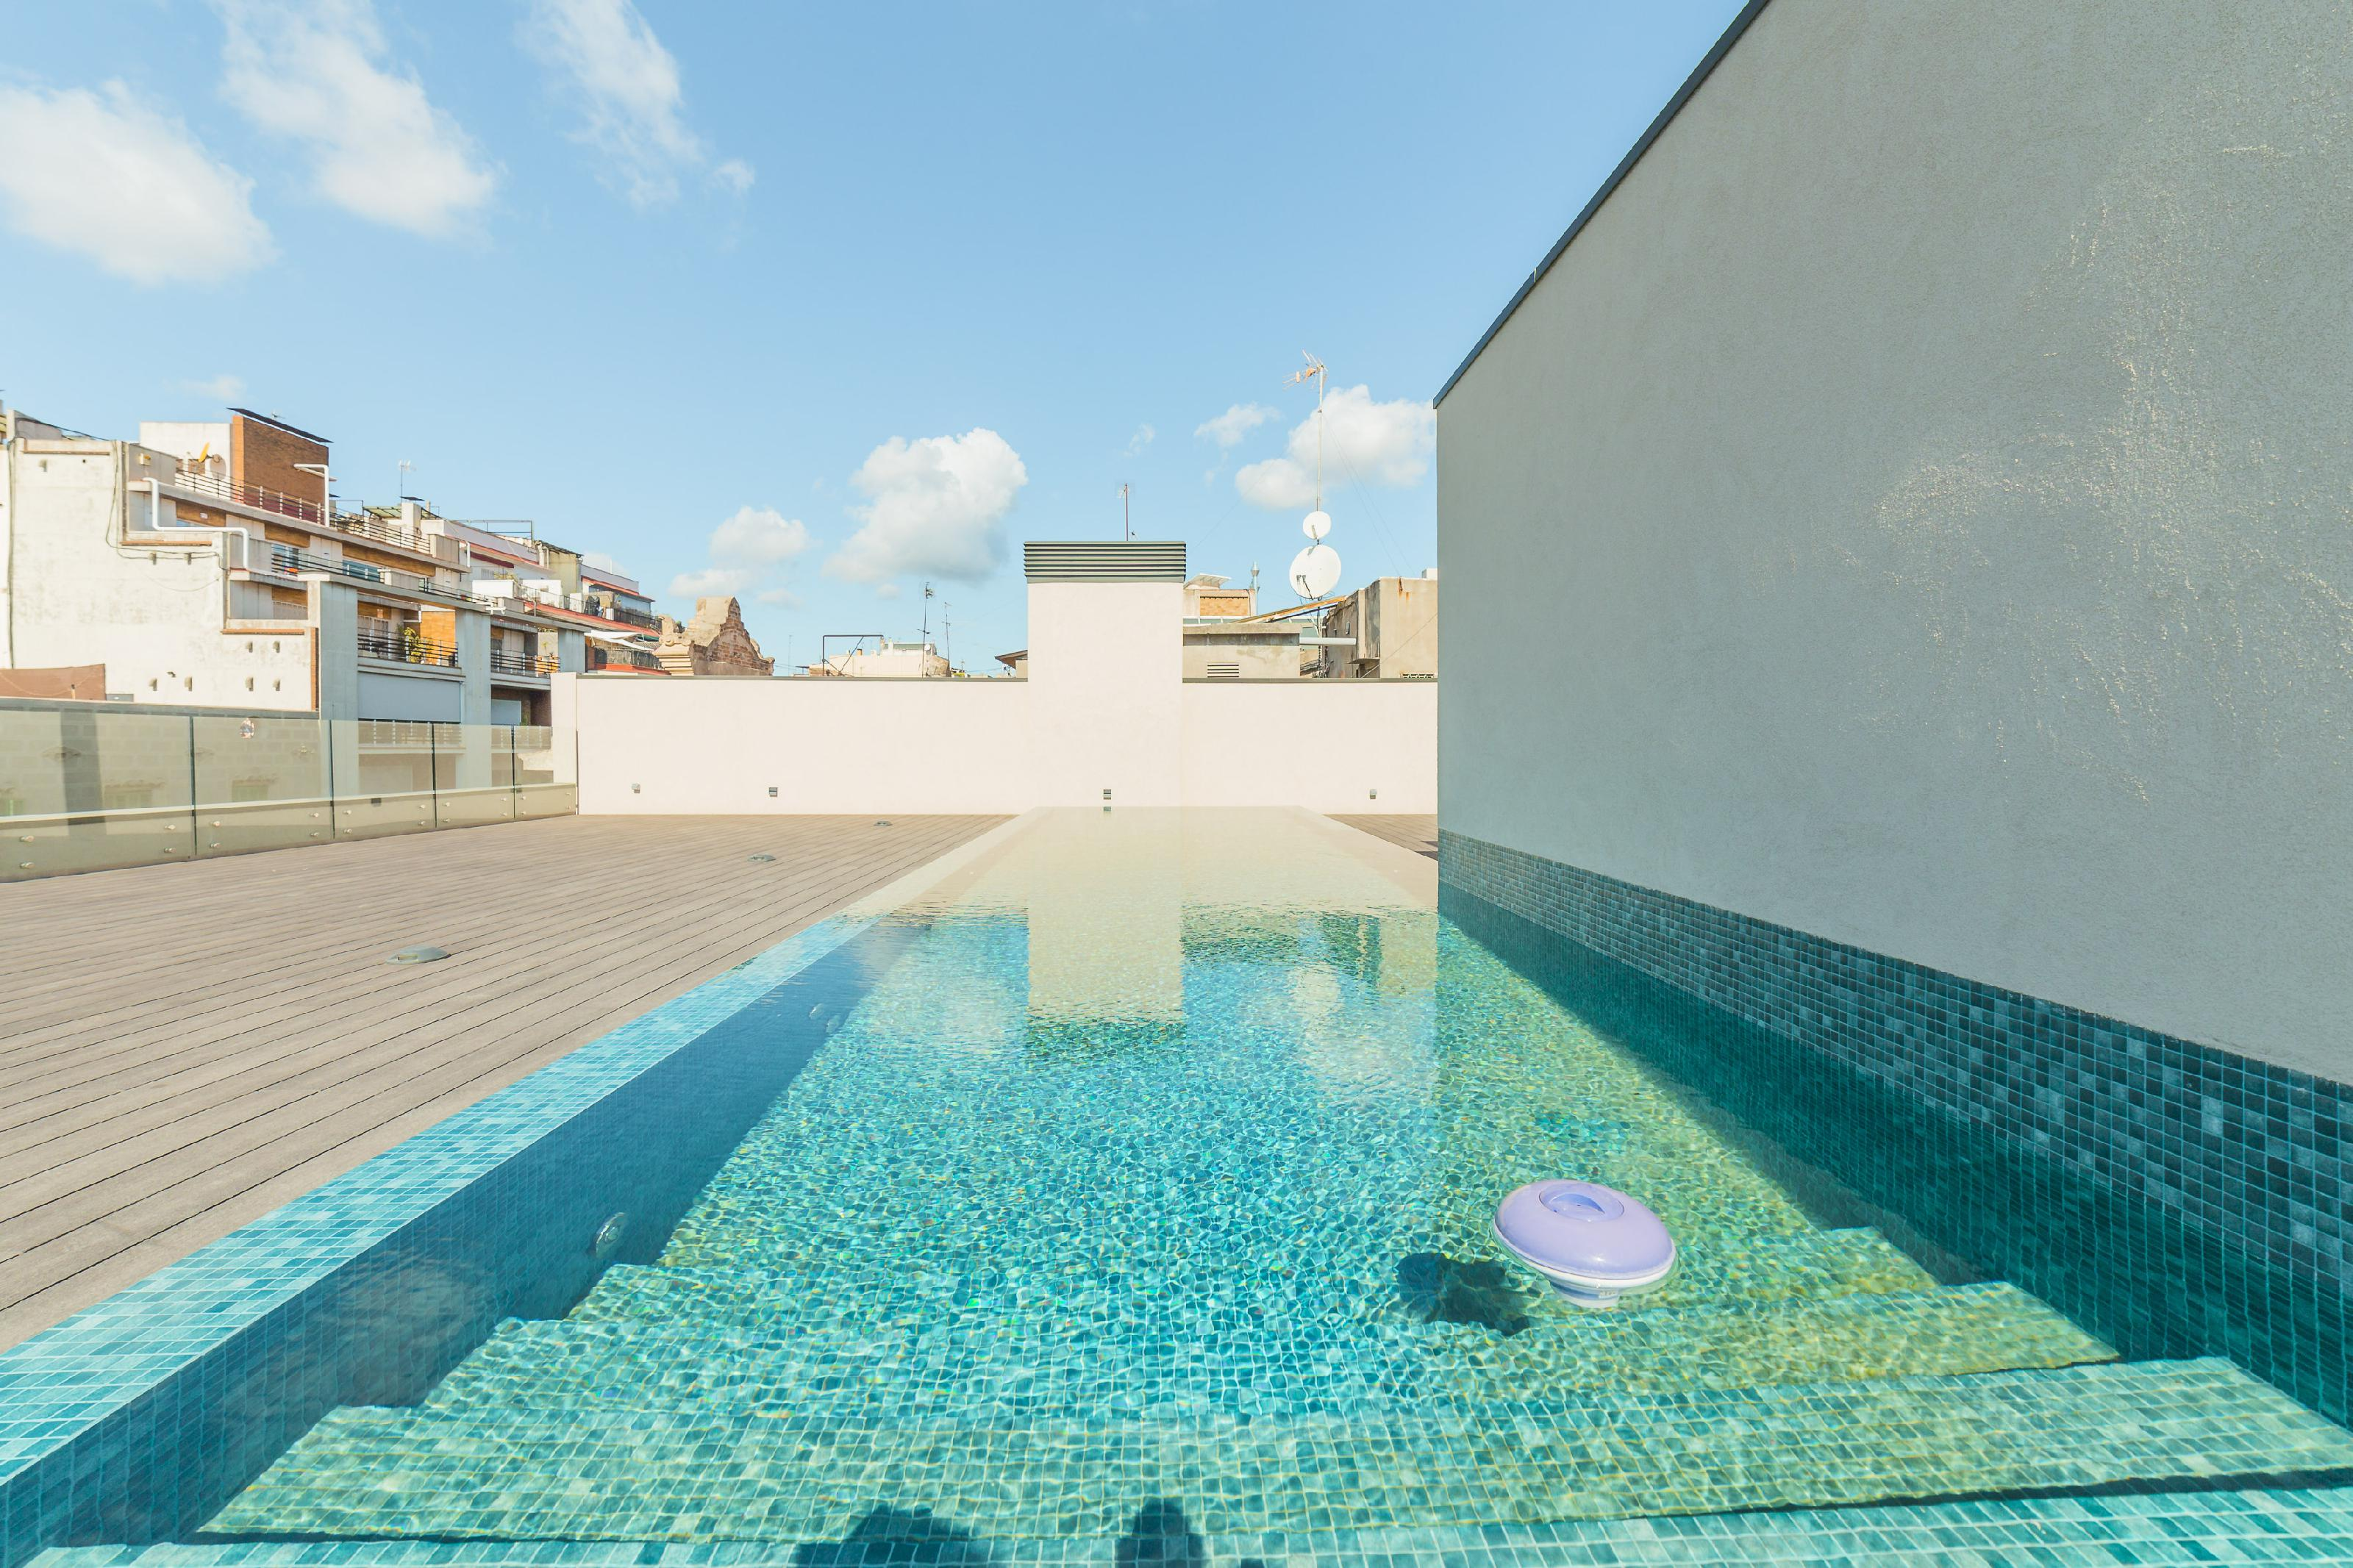 182176 Apartment for sale in Eixample, Old Left Eixample 34